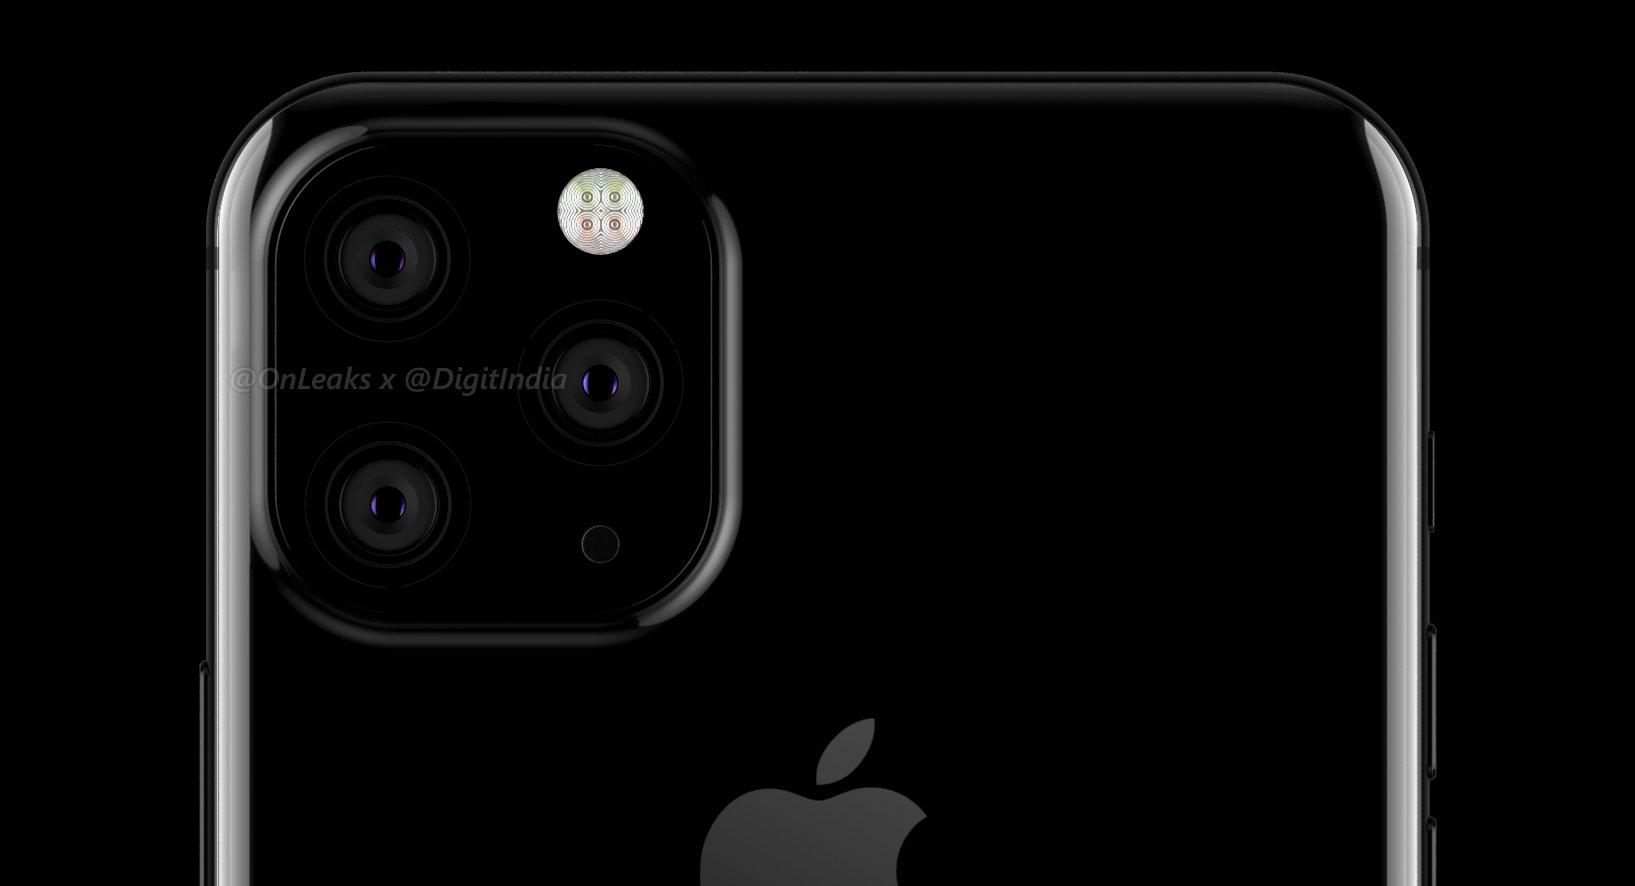 iphone-xi-2019-onleaks-render